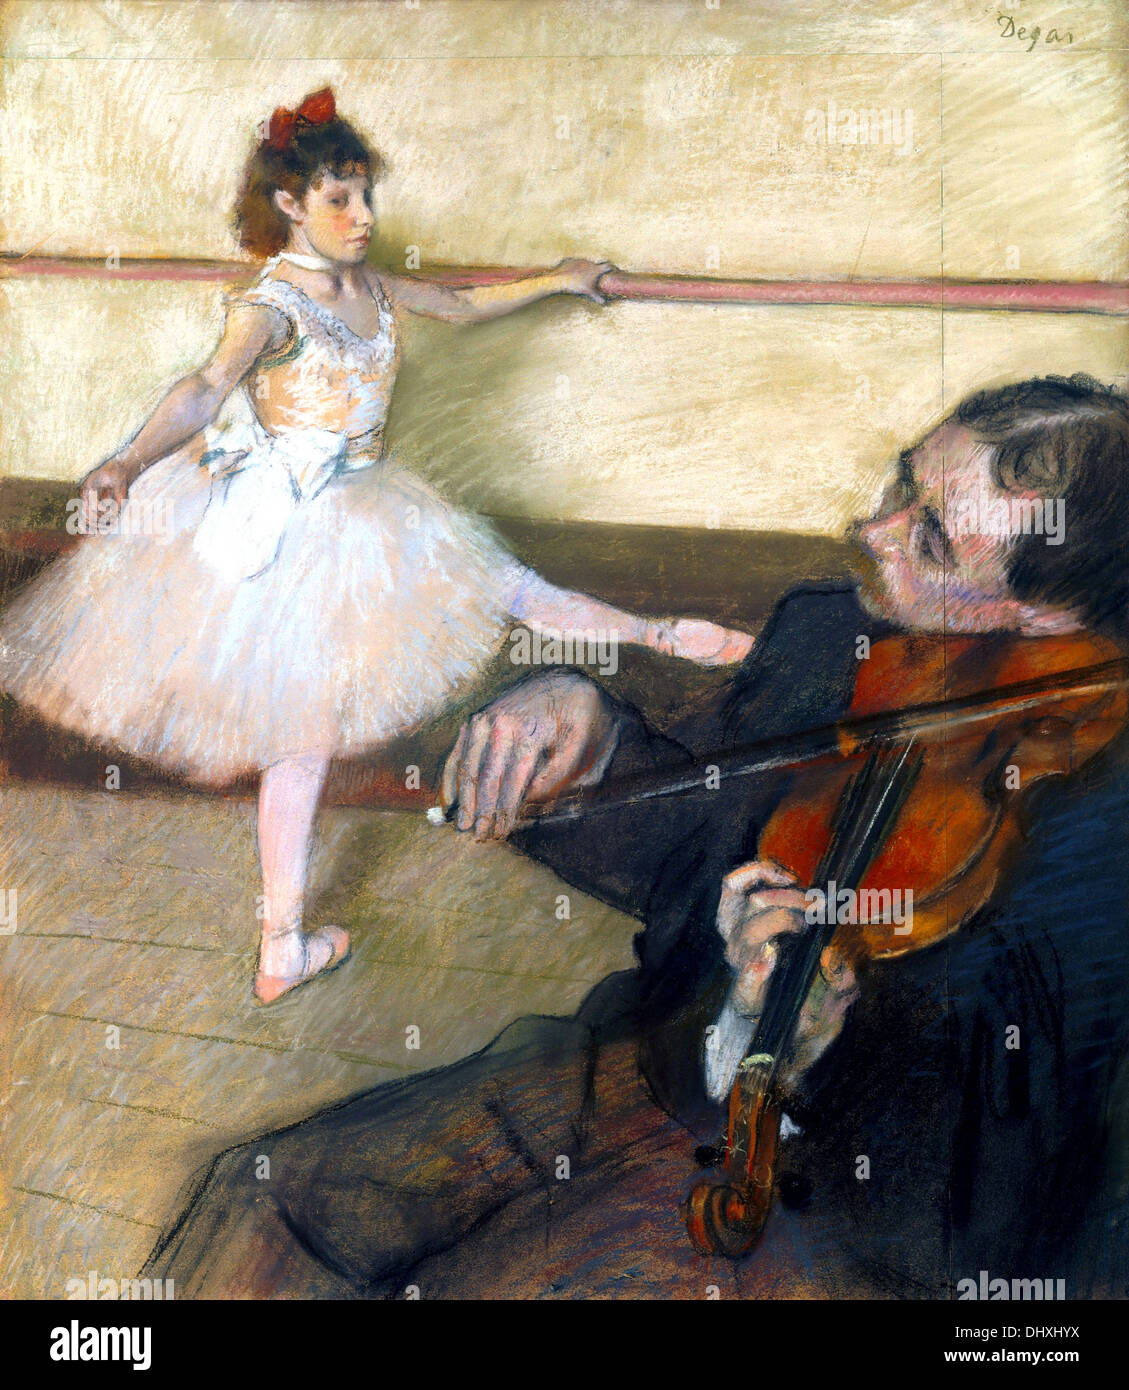 The Dance Lesson  - by Edgar Degas, 1879 - Stock Image